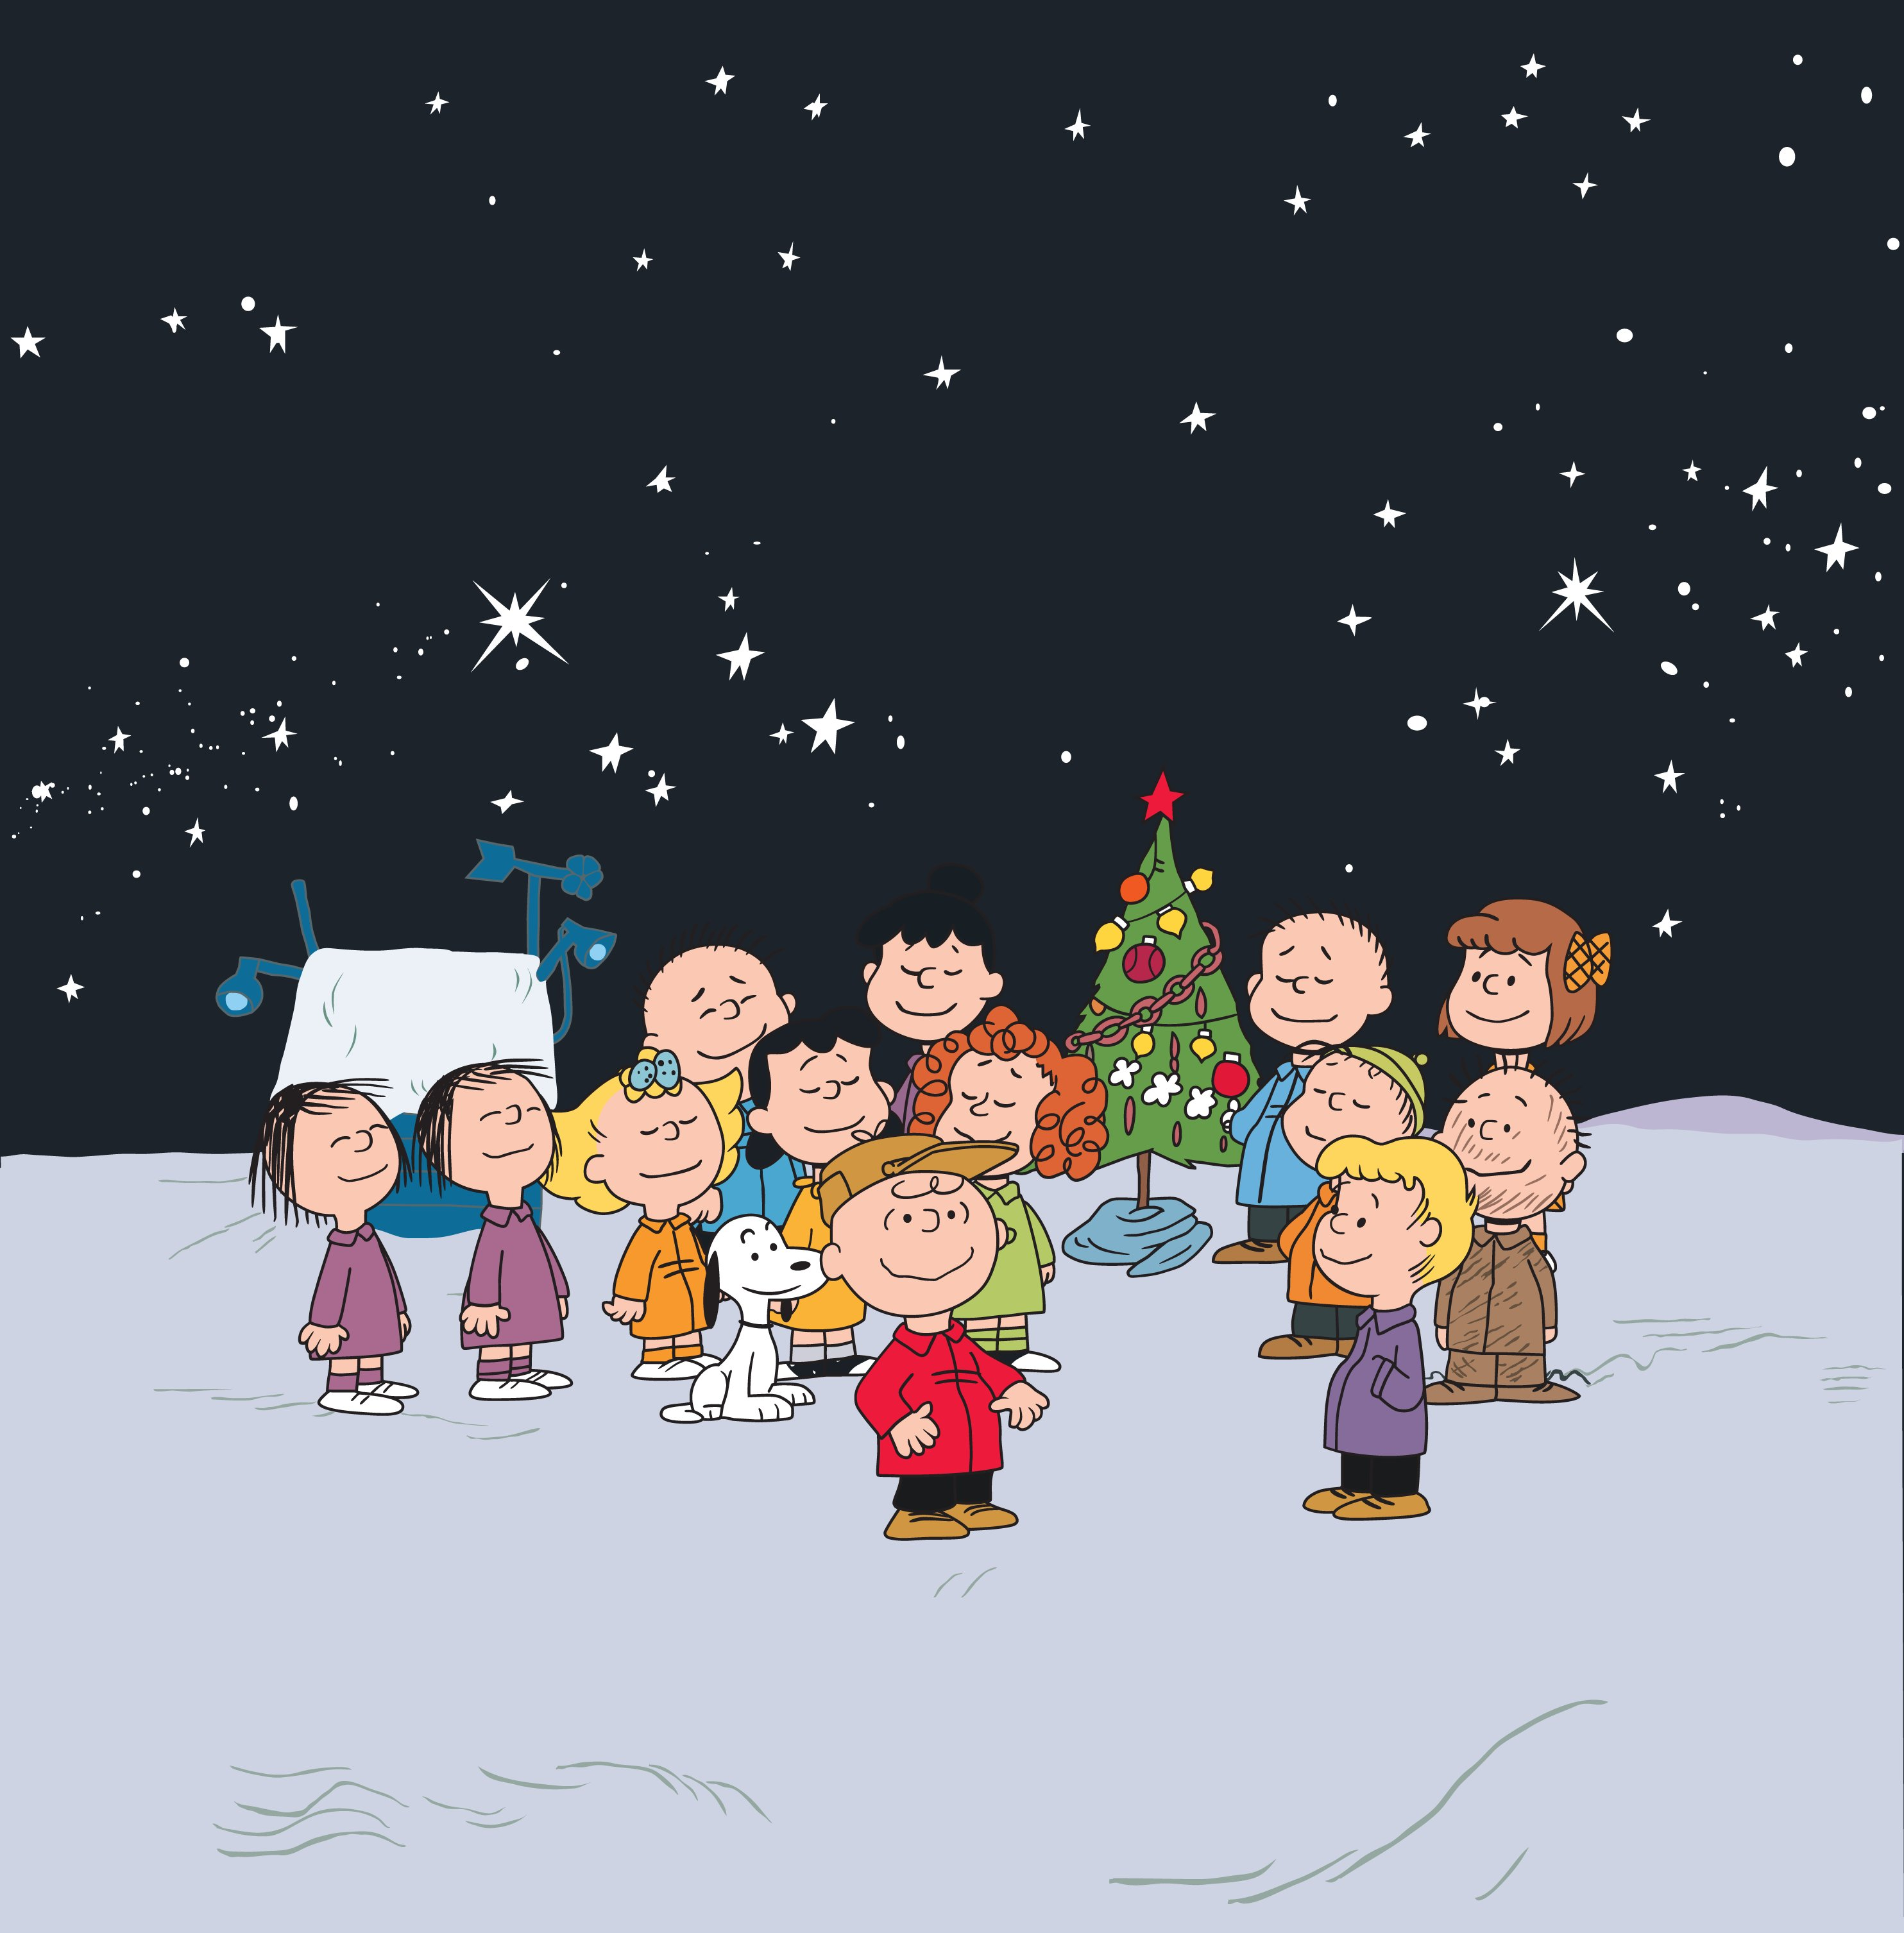 2021 Charlie Brown Christmas Airs When Holiday Classic Returns A Charlie Brown Christmas Is Back On Broadcast Tv At Pbs On Dec 13 Albuquerque Journal